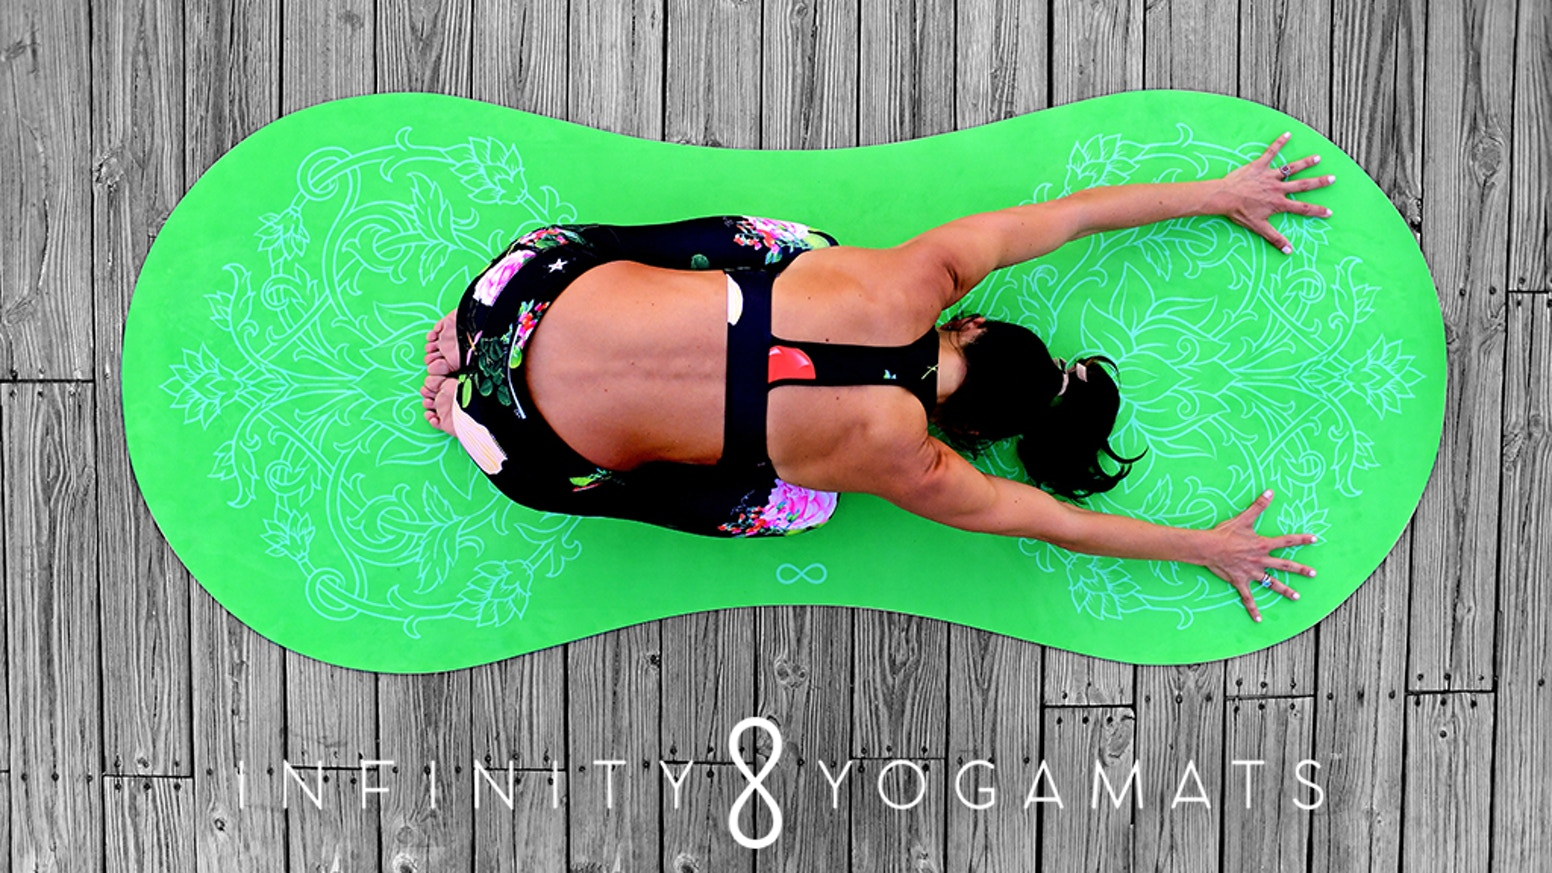 The world's first and only yoga mat designed to fit the shape of your body giving you the freedom to practice without boundaries.